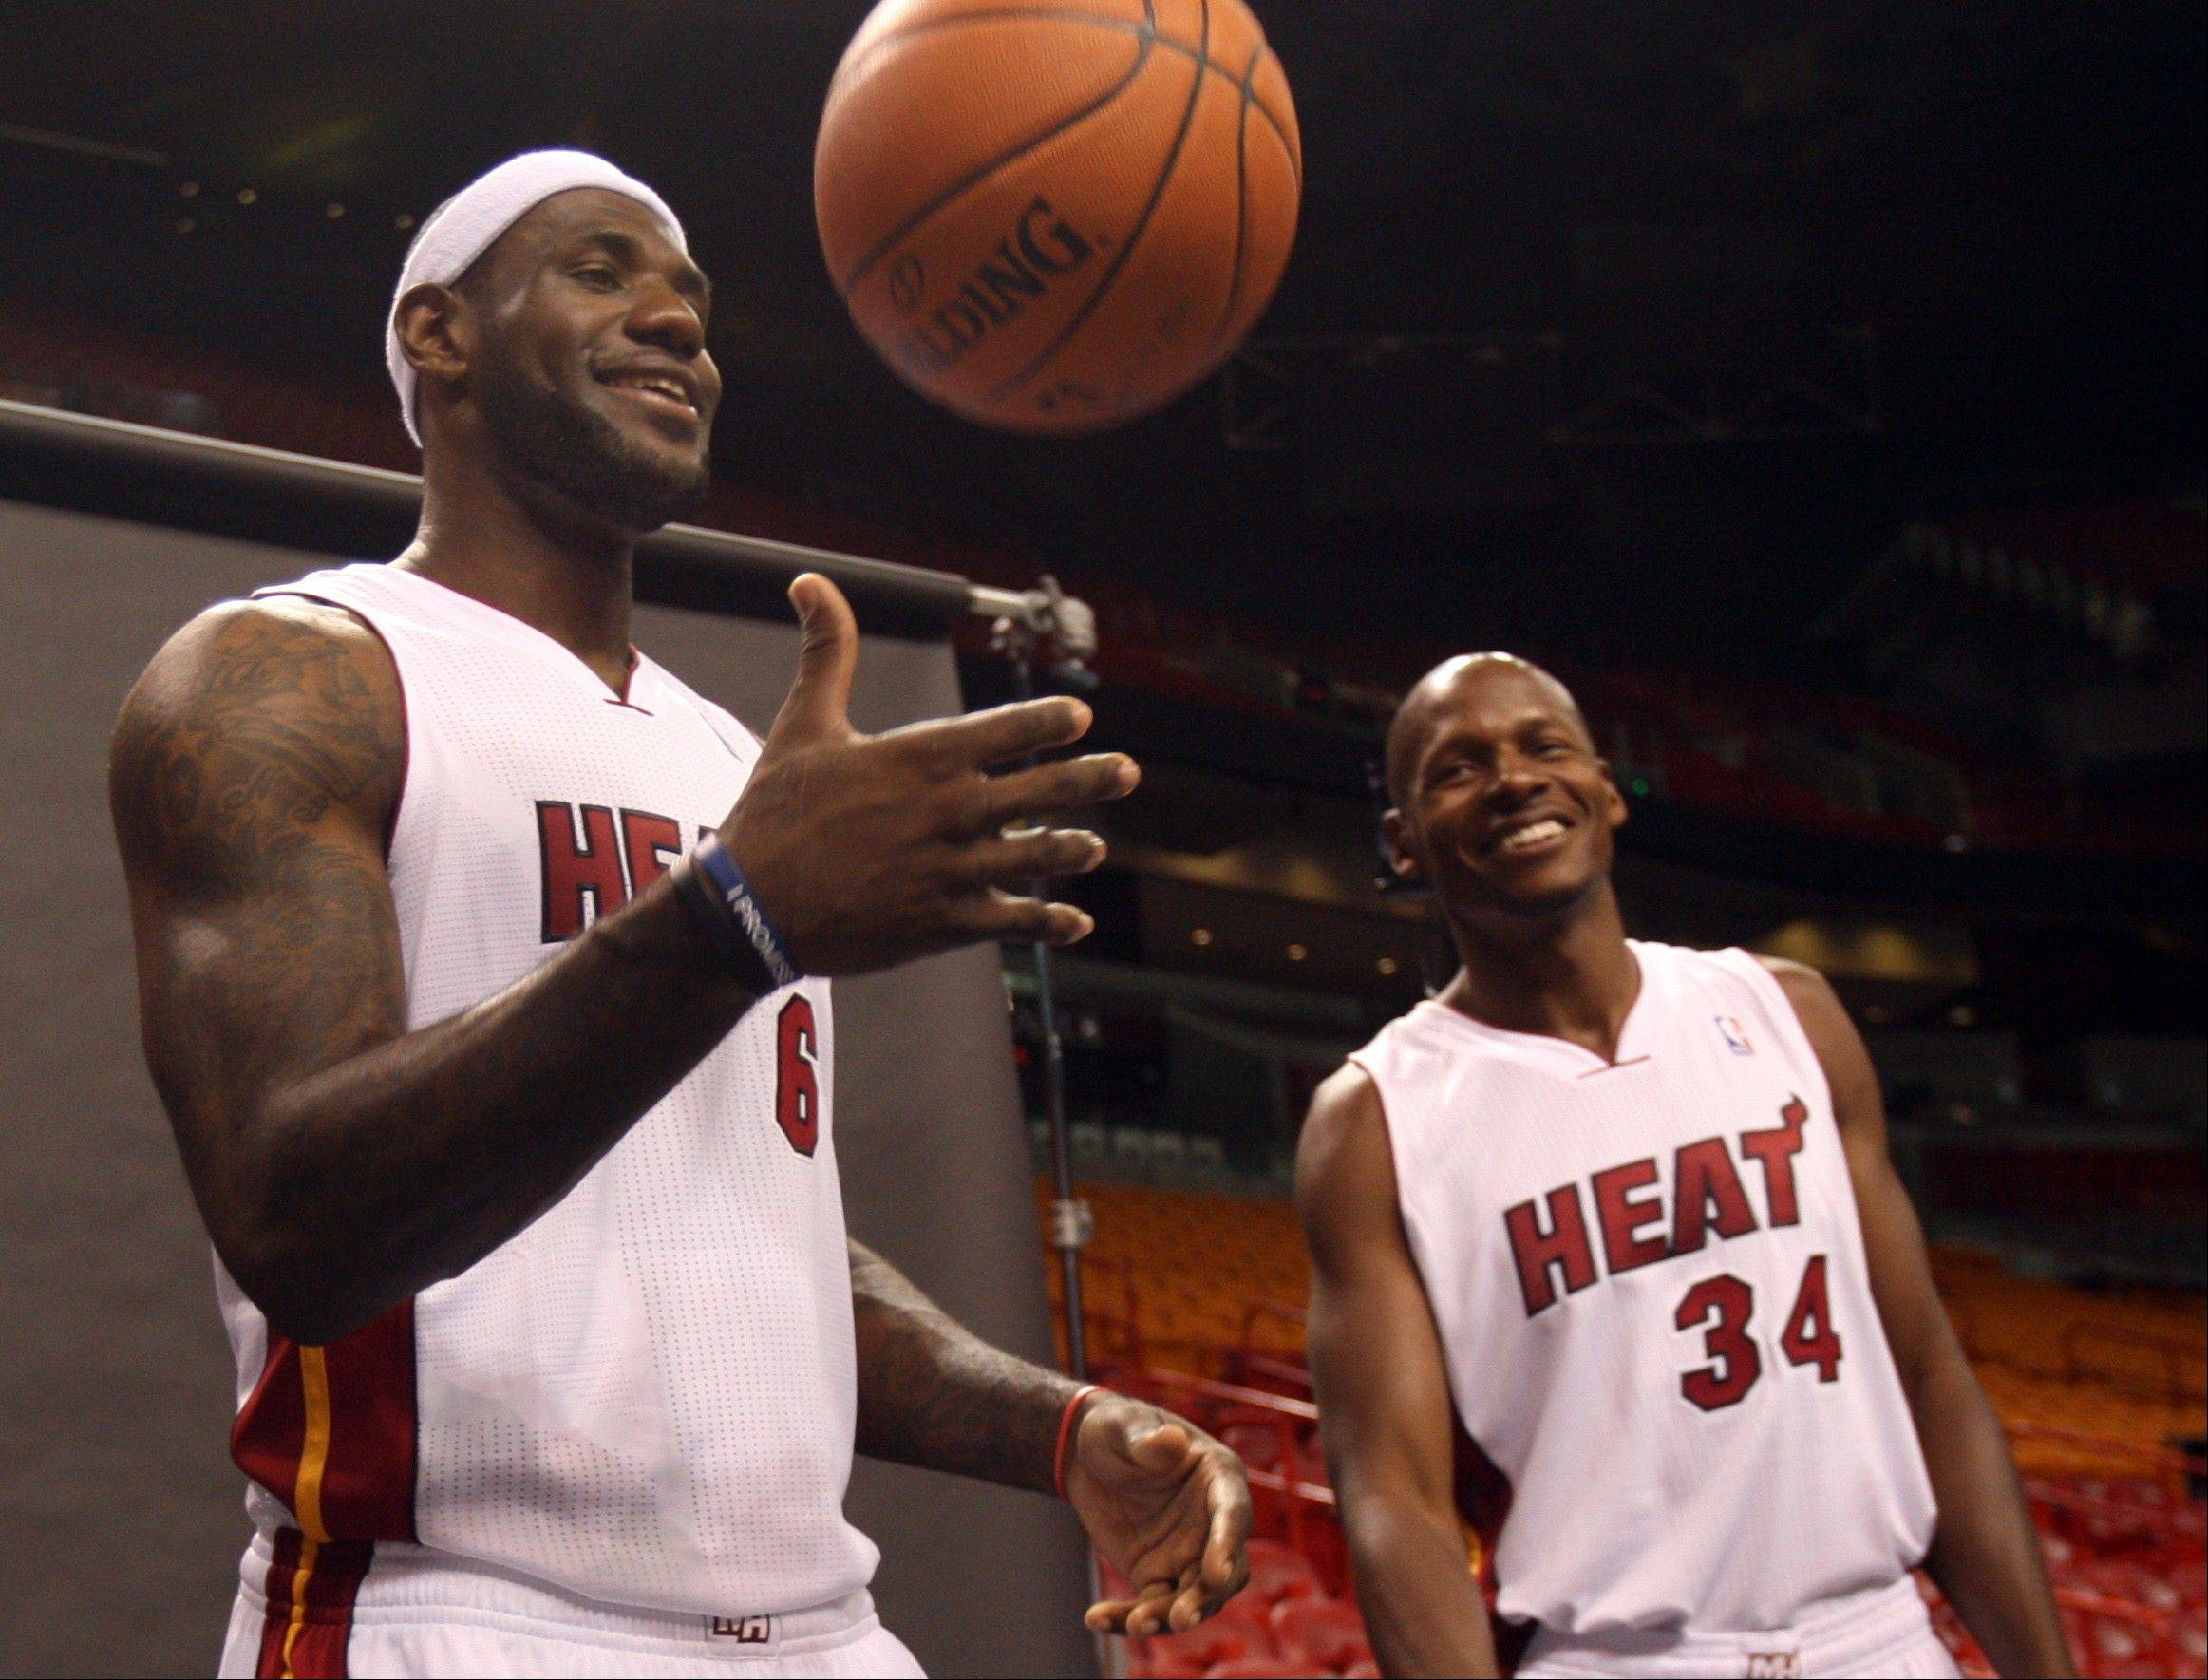 Miami Heat players LeBron James, left, and Ray Allen wait for their turn to have their pictures taken Friday during the team's NBA media day in Miami.